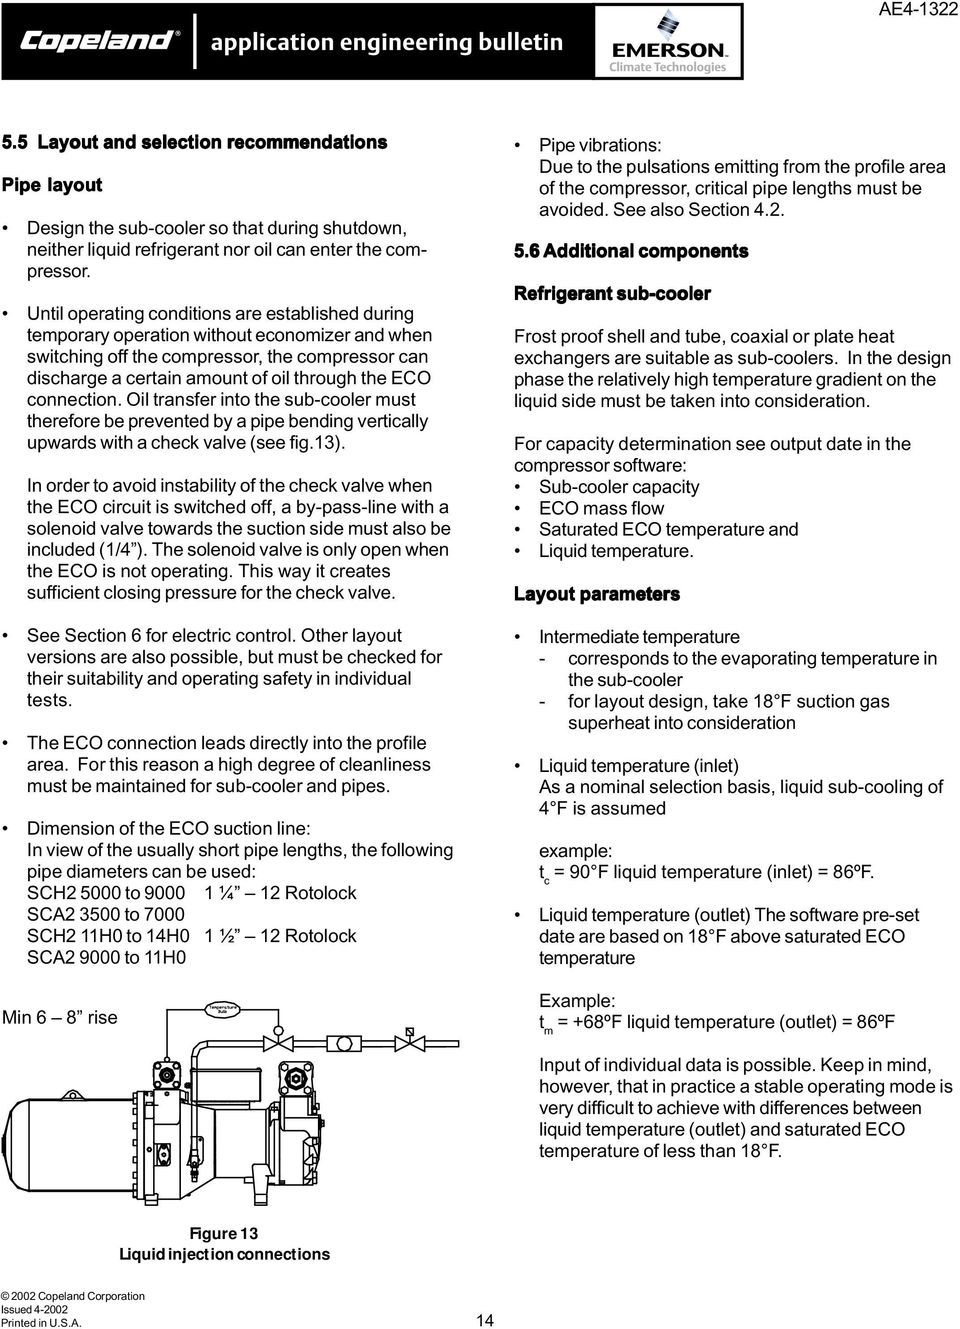 Copeland Screw Compressors Semi Hermetic Compact Application Manual Fan Light Wiring Diagram 3 Phase Pressor Diagrams 1 Connection Oil Transfer Into The Sub Cooler Must Therefore Be Prevented By A Pipe